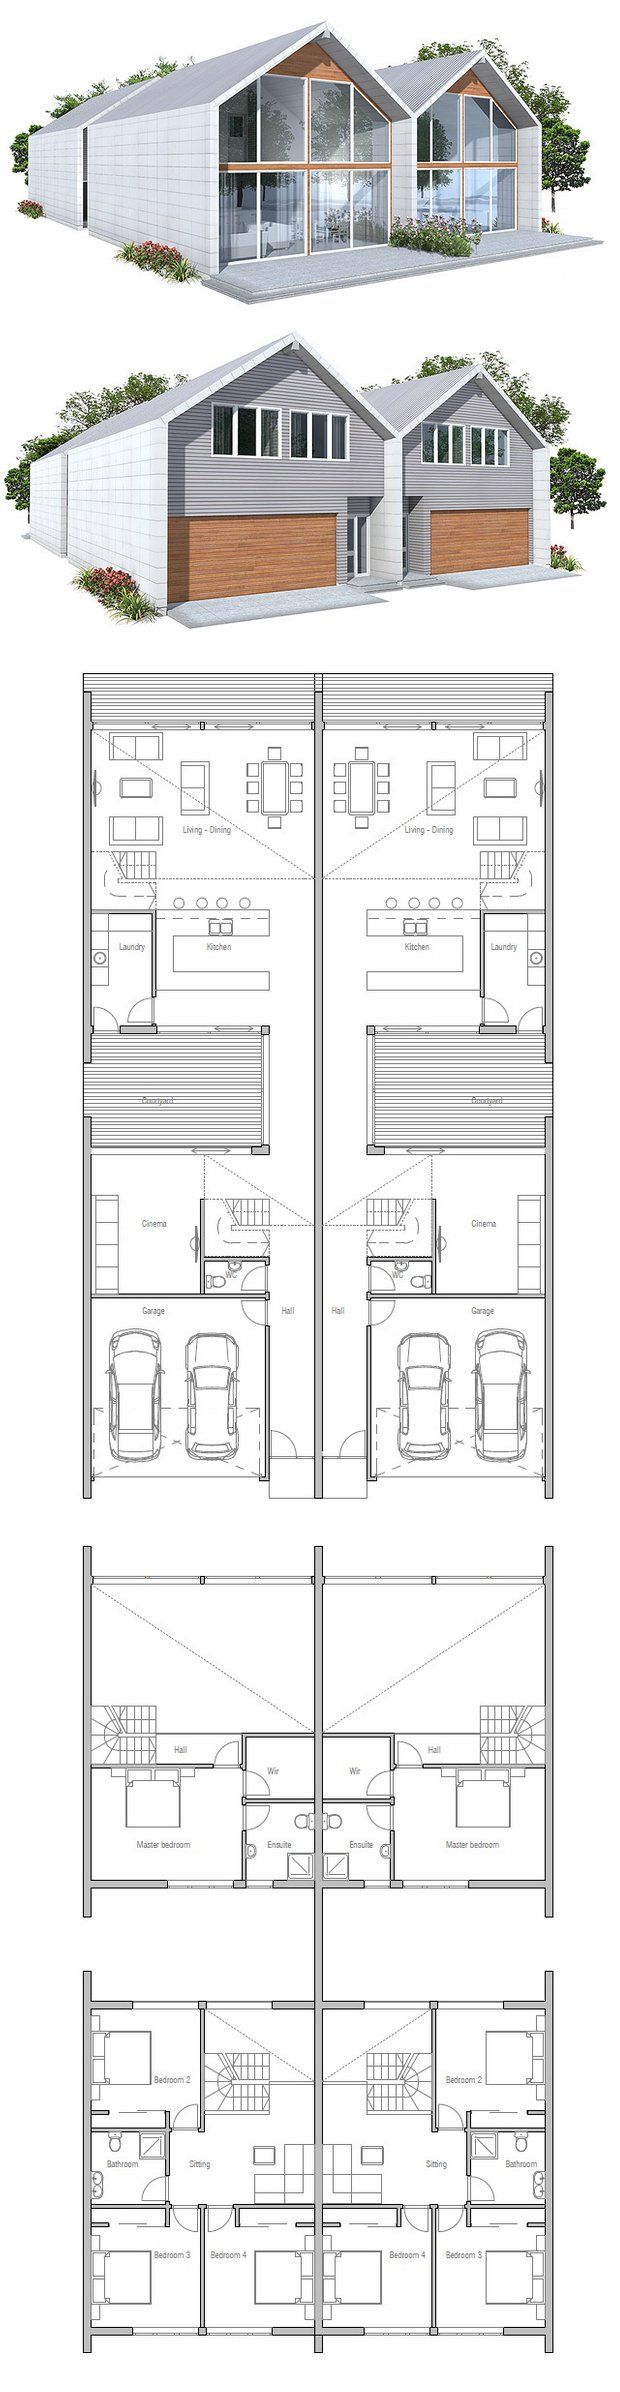 Duplex House Plans on craftsman small house